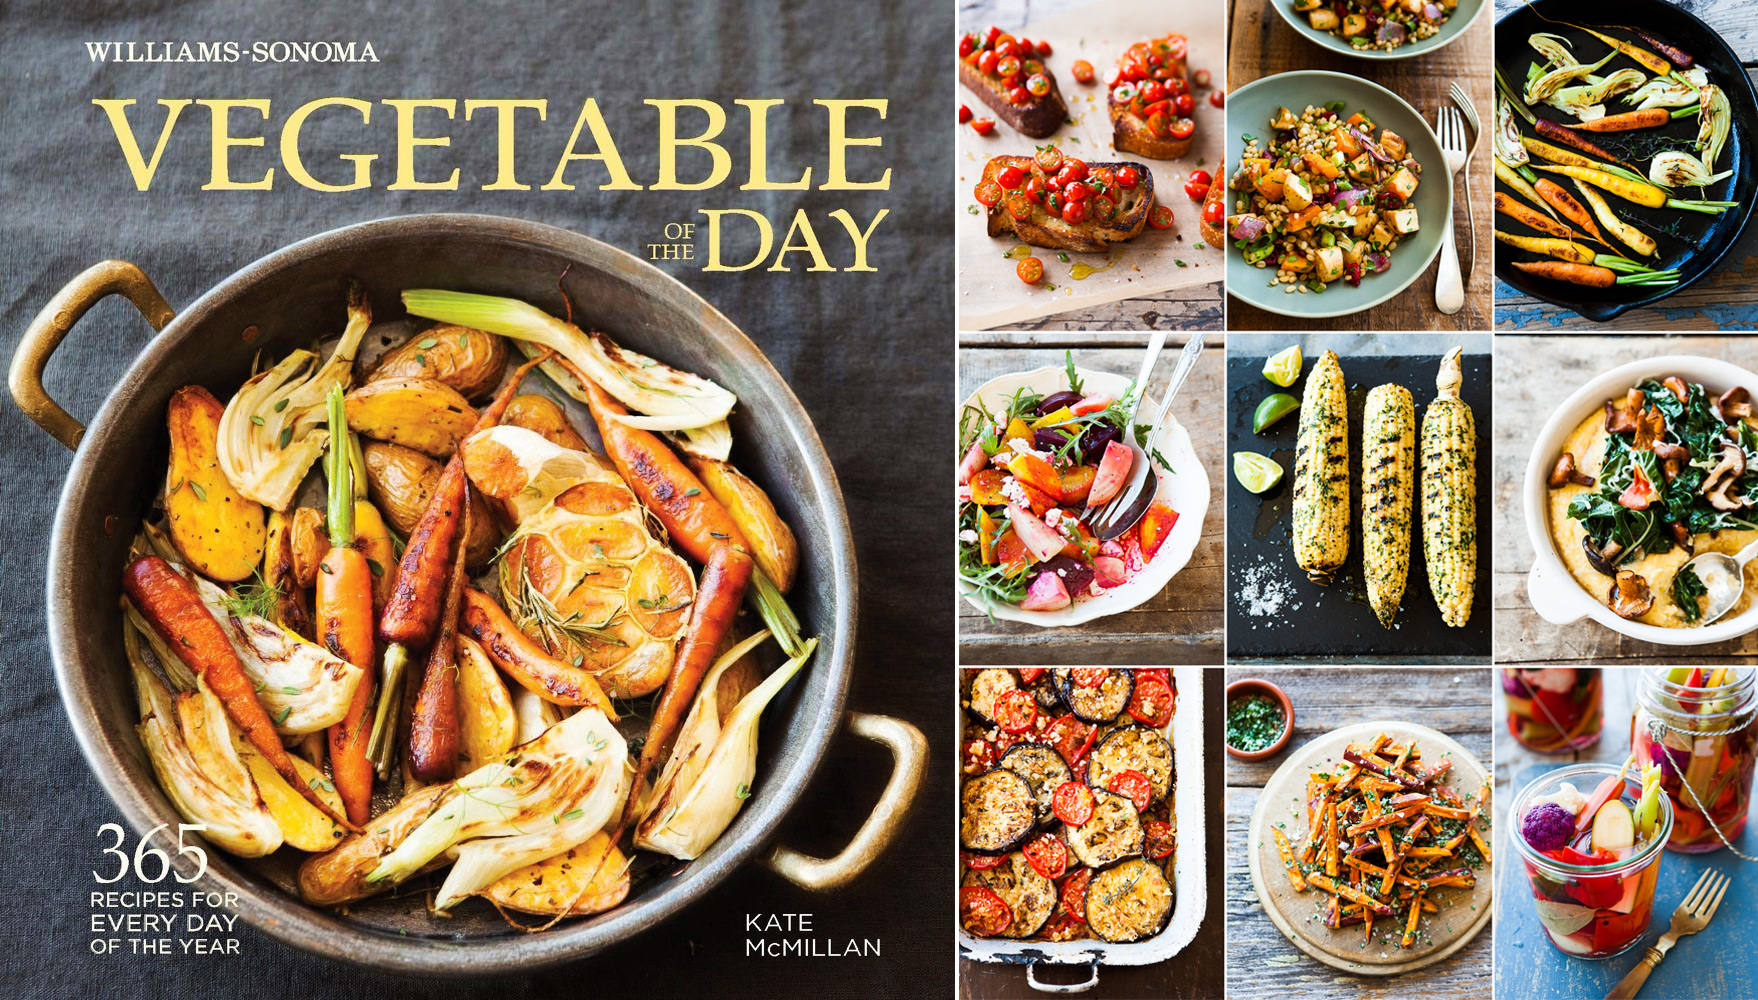 WilliamsSonoma_Vegetable